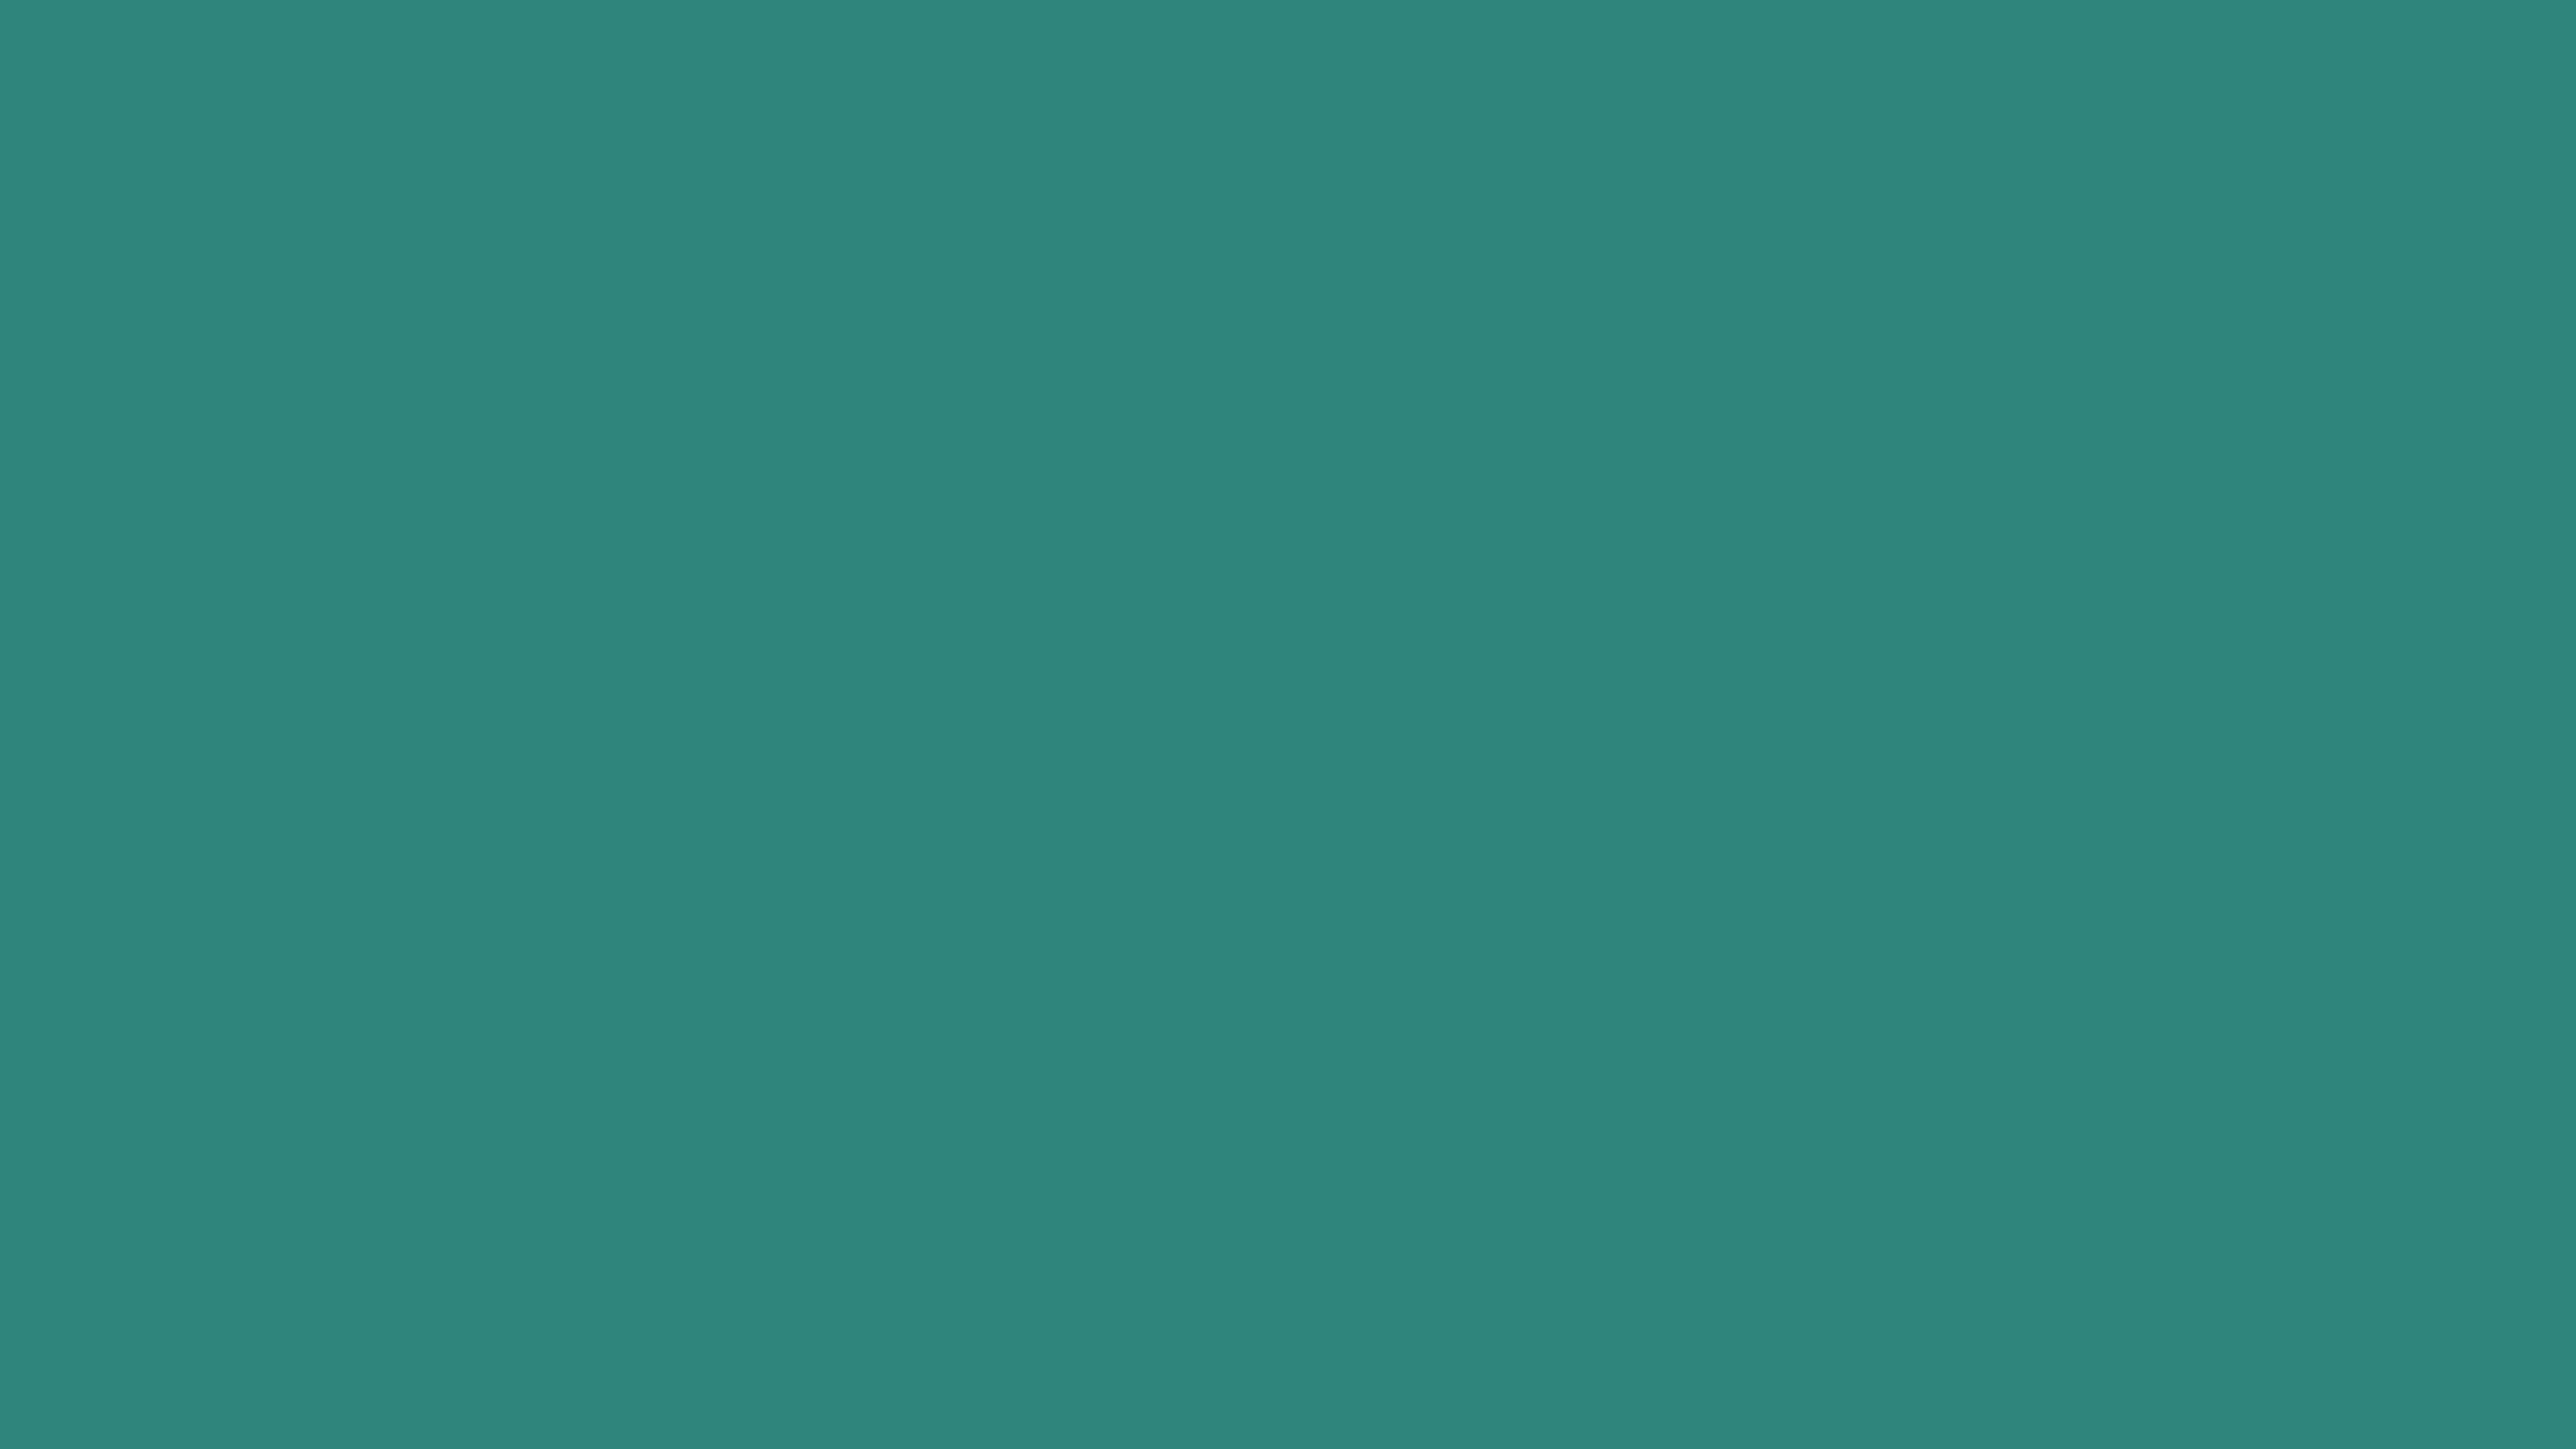 3840x2160 Celadon Green Solid Color Background